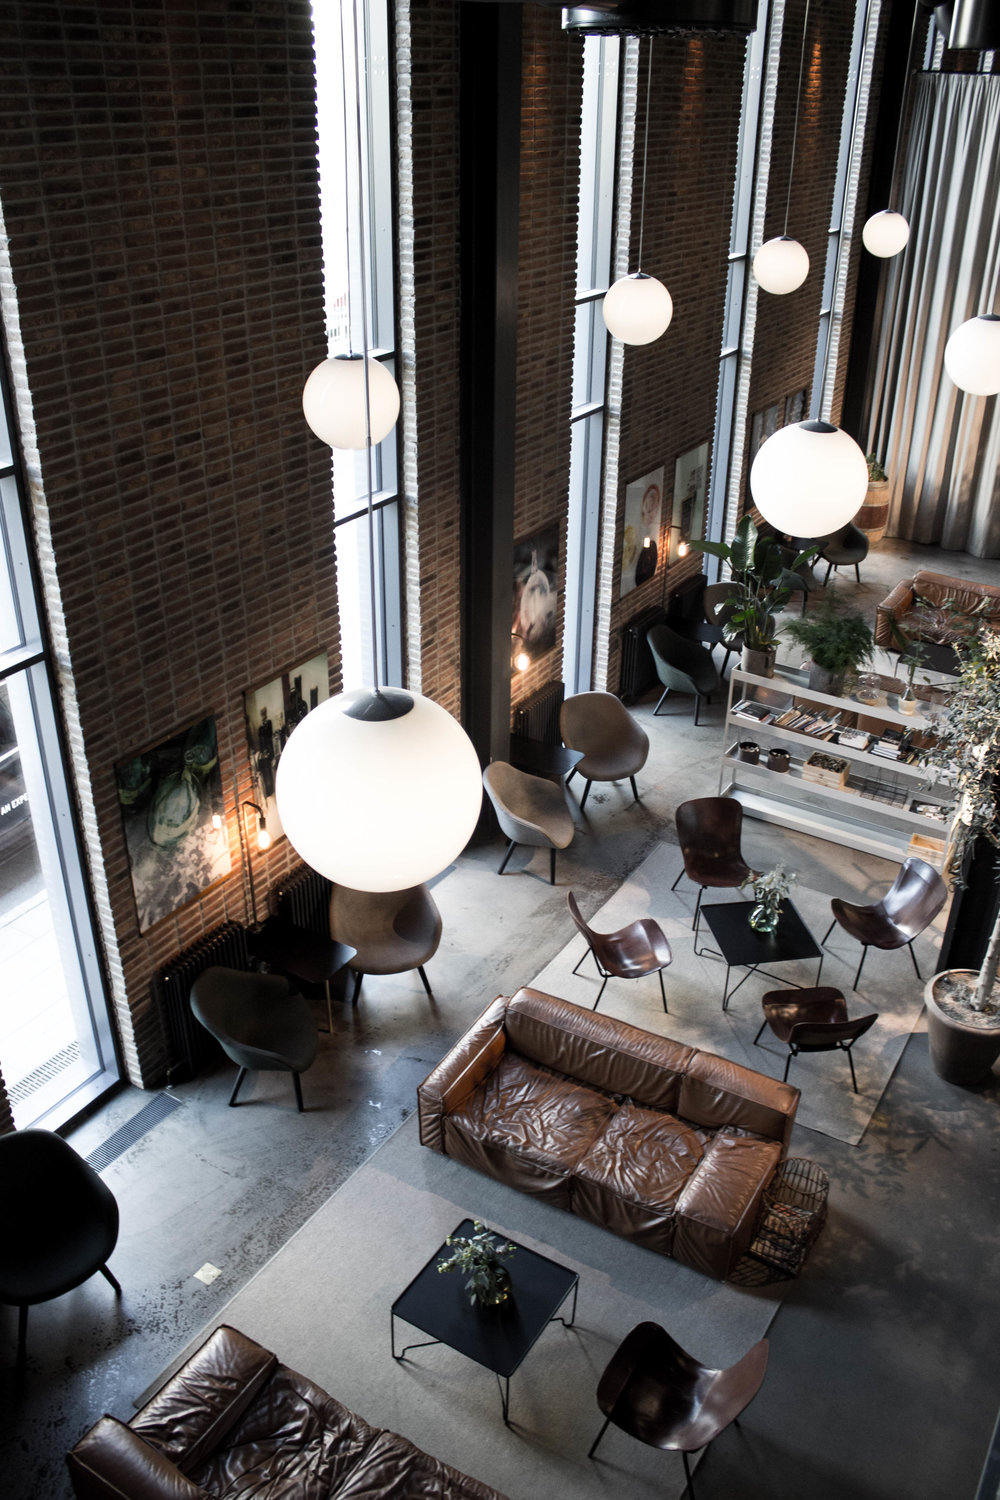 aboutthatlook, the winery hotel, lifestyle, hotel, wine and dine, stockholm, wineryhotel